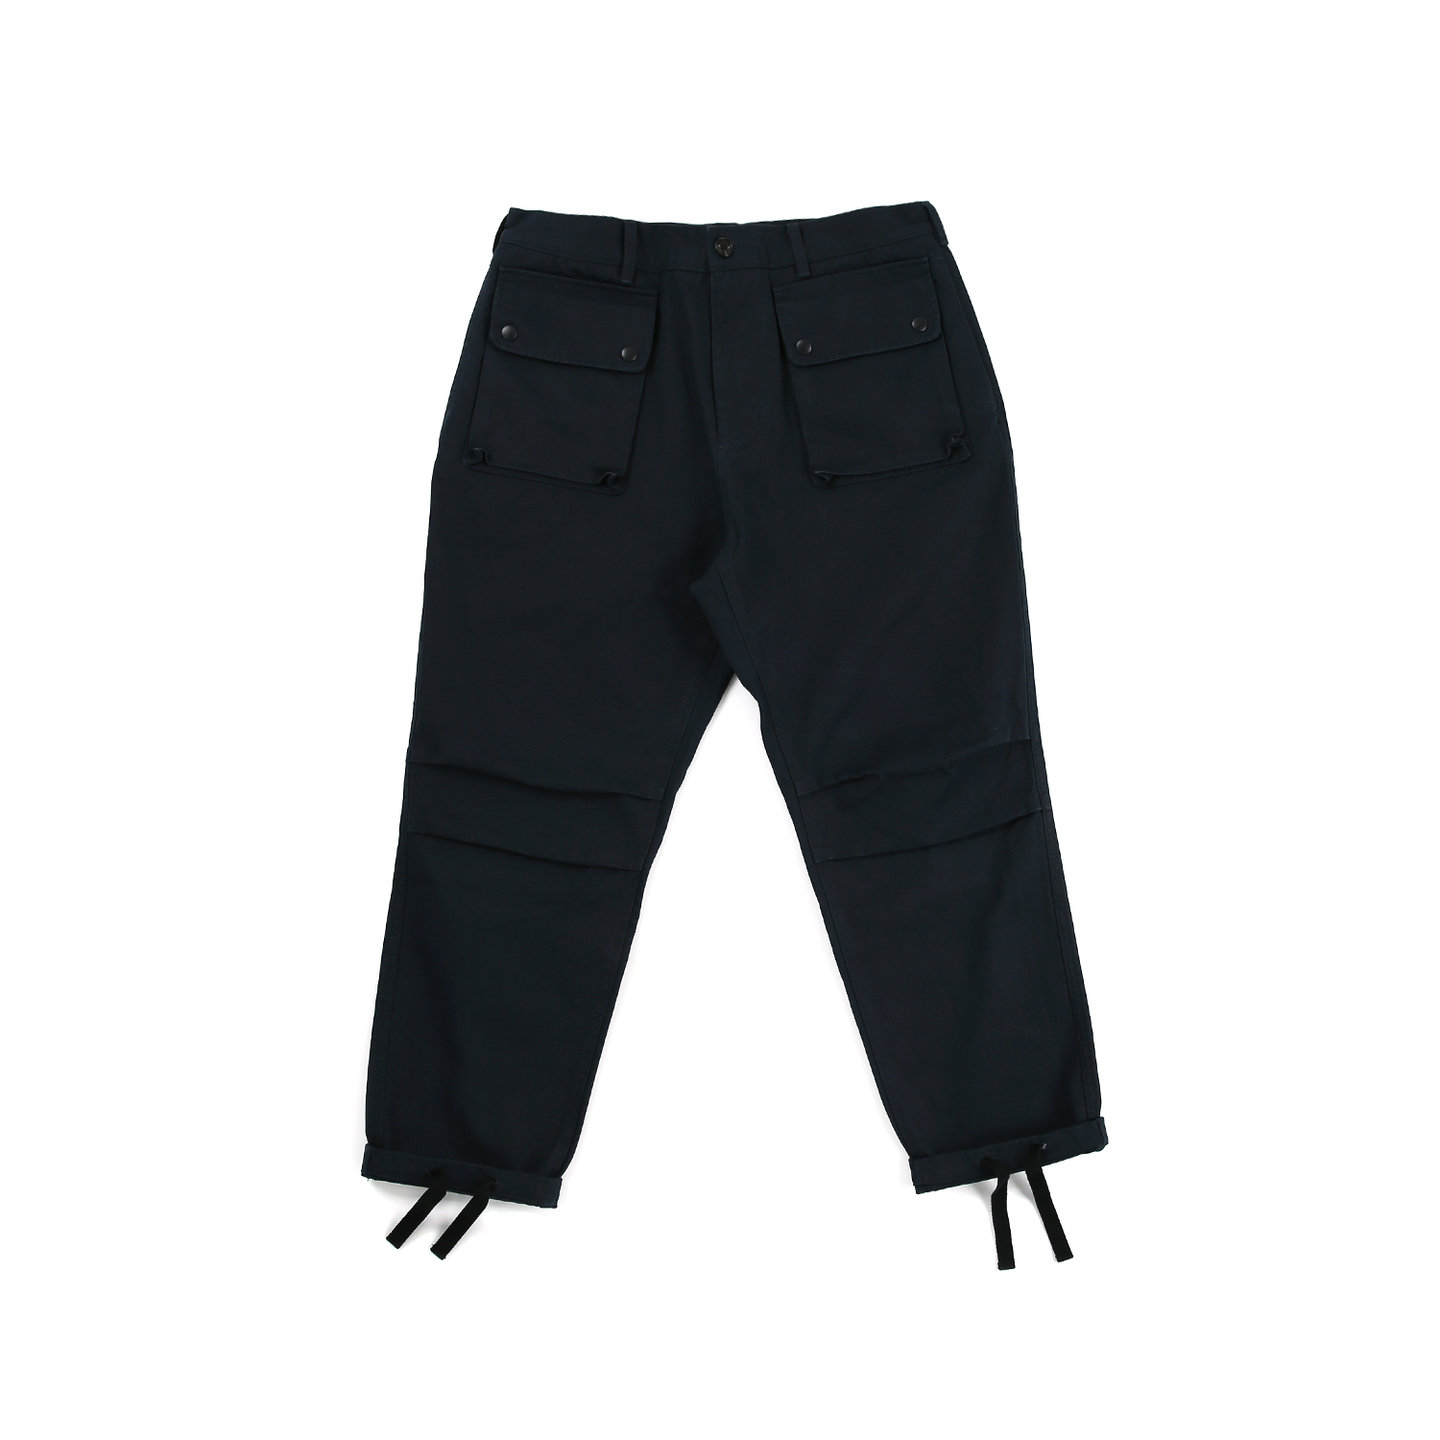 MOUNTAIN DIVISION PANTS (NAVY)